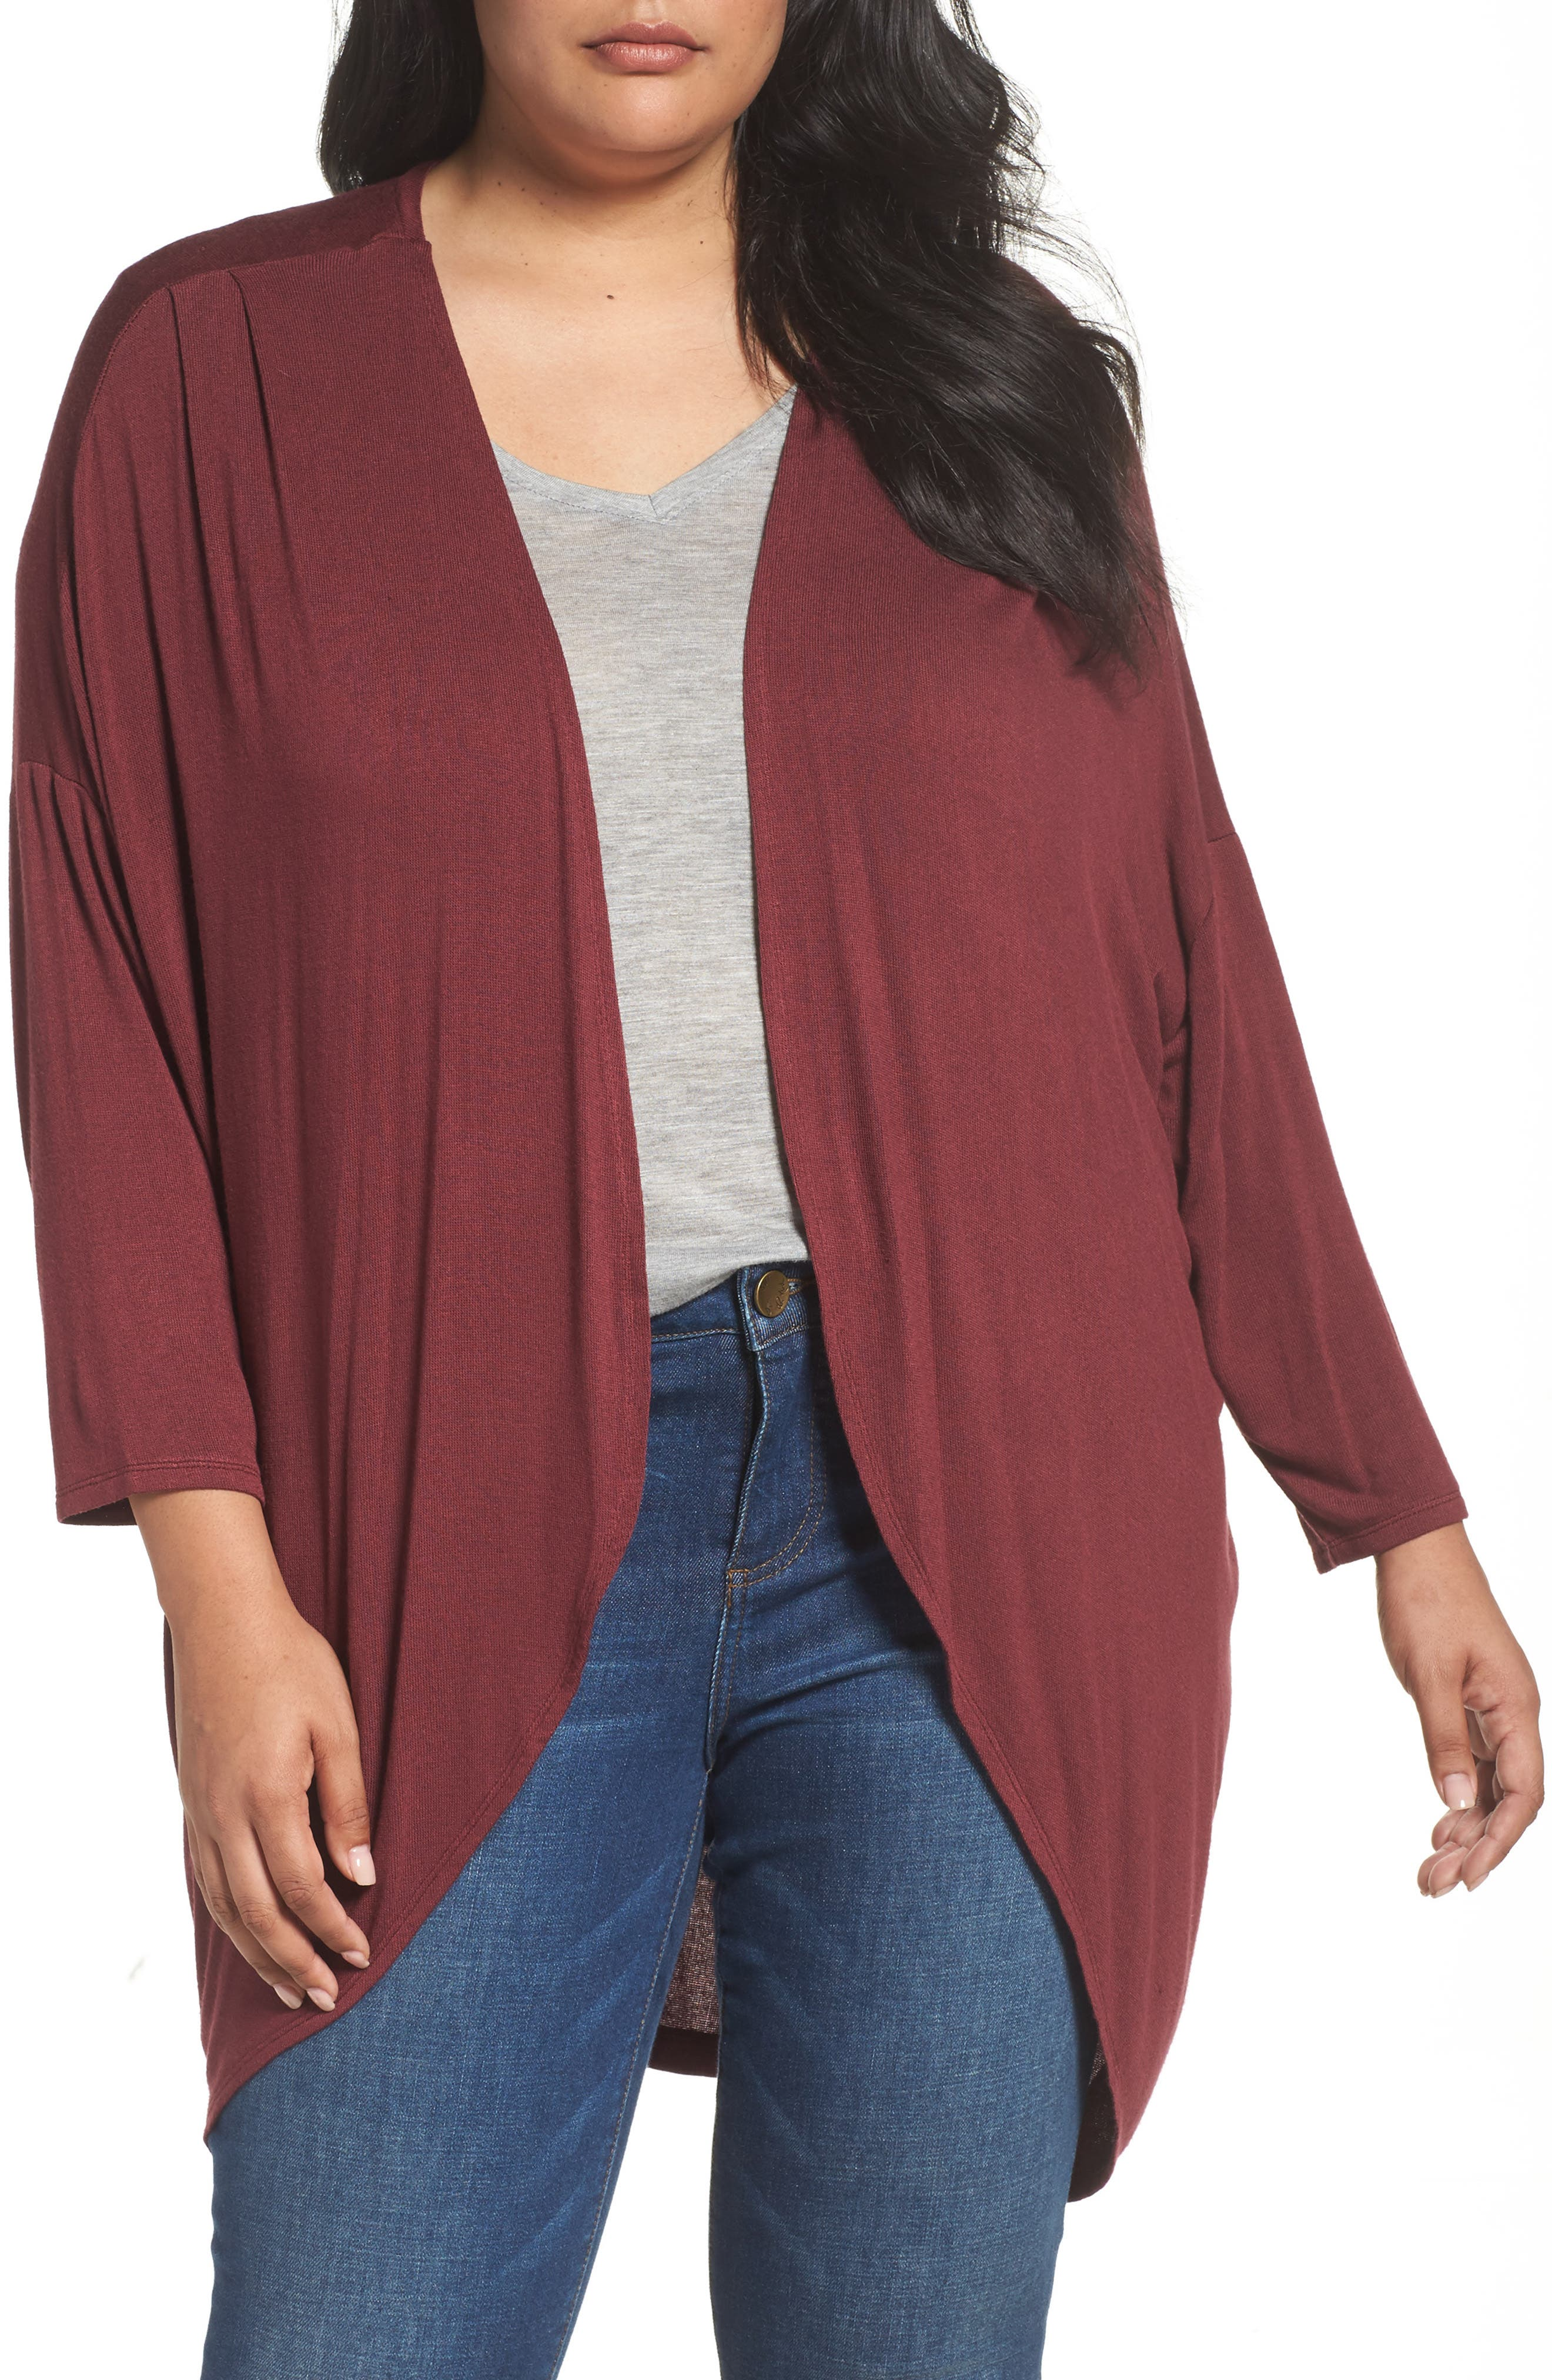 Alternate Image 1 Selected - Sejour Lightweight Cardigan (Plus Size)